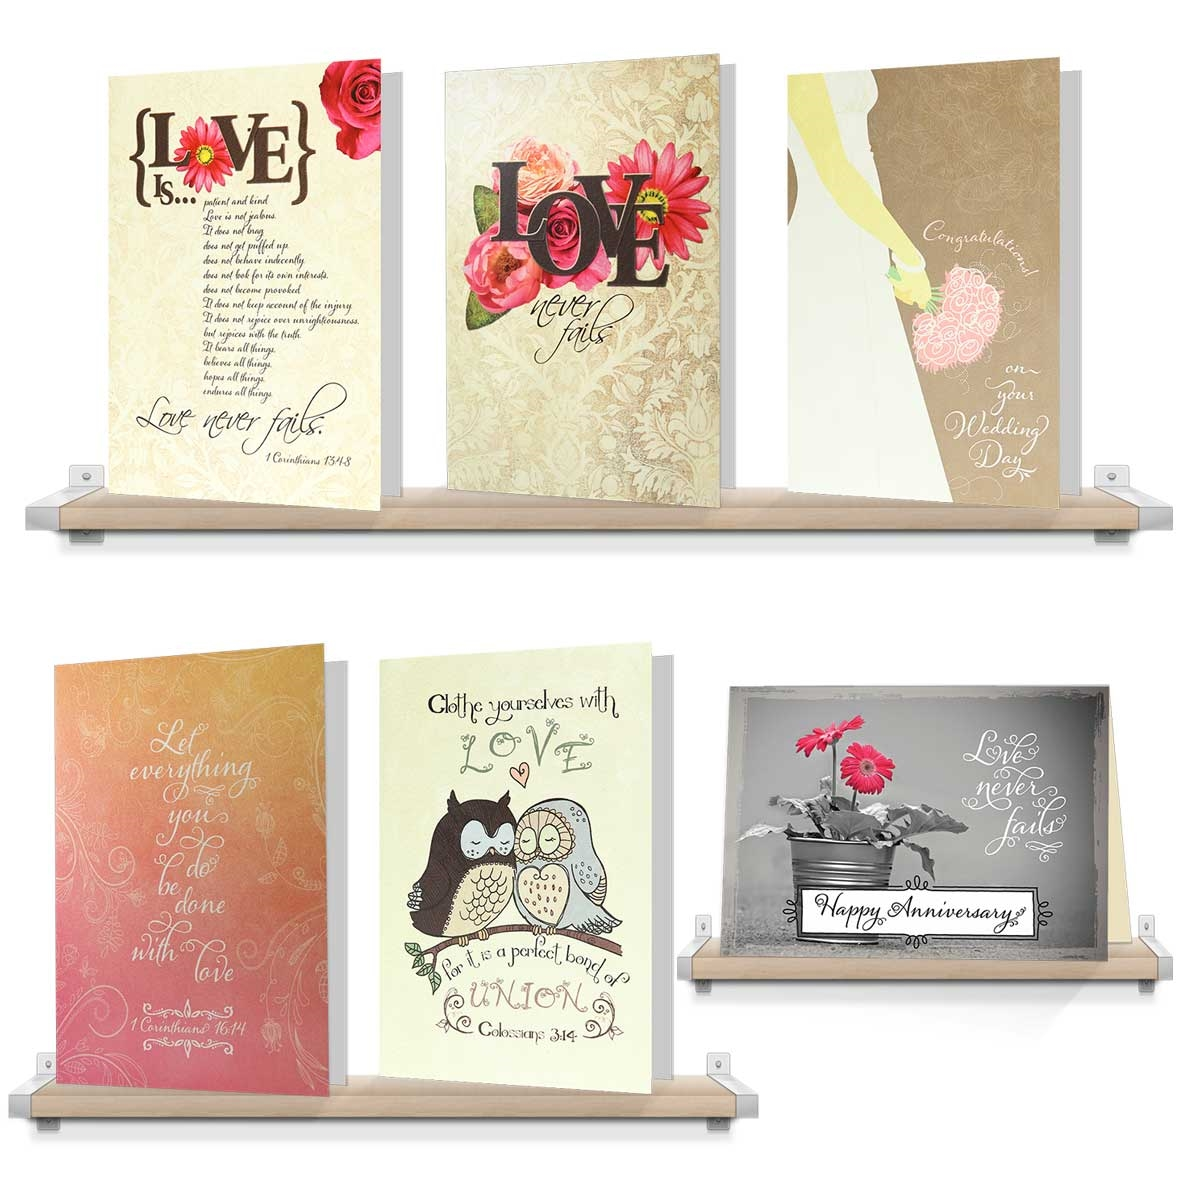 I love you pack assorted weddinganniversary greeting cards variety of wedding anniversary greeting cards view larger photo email m4hsunfo